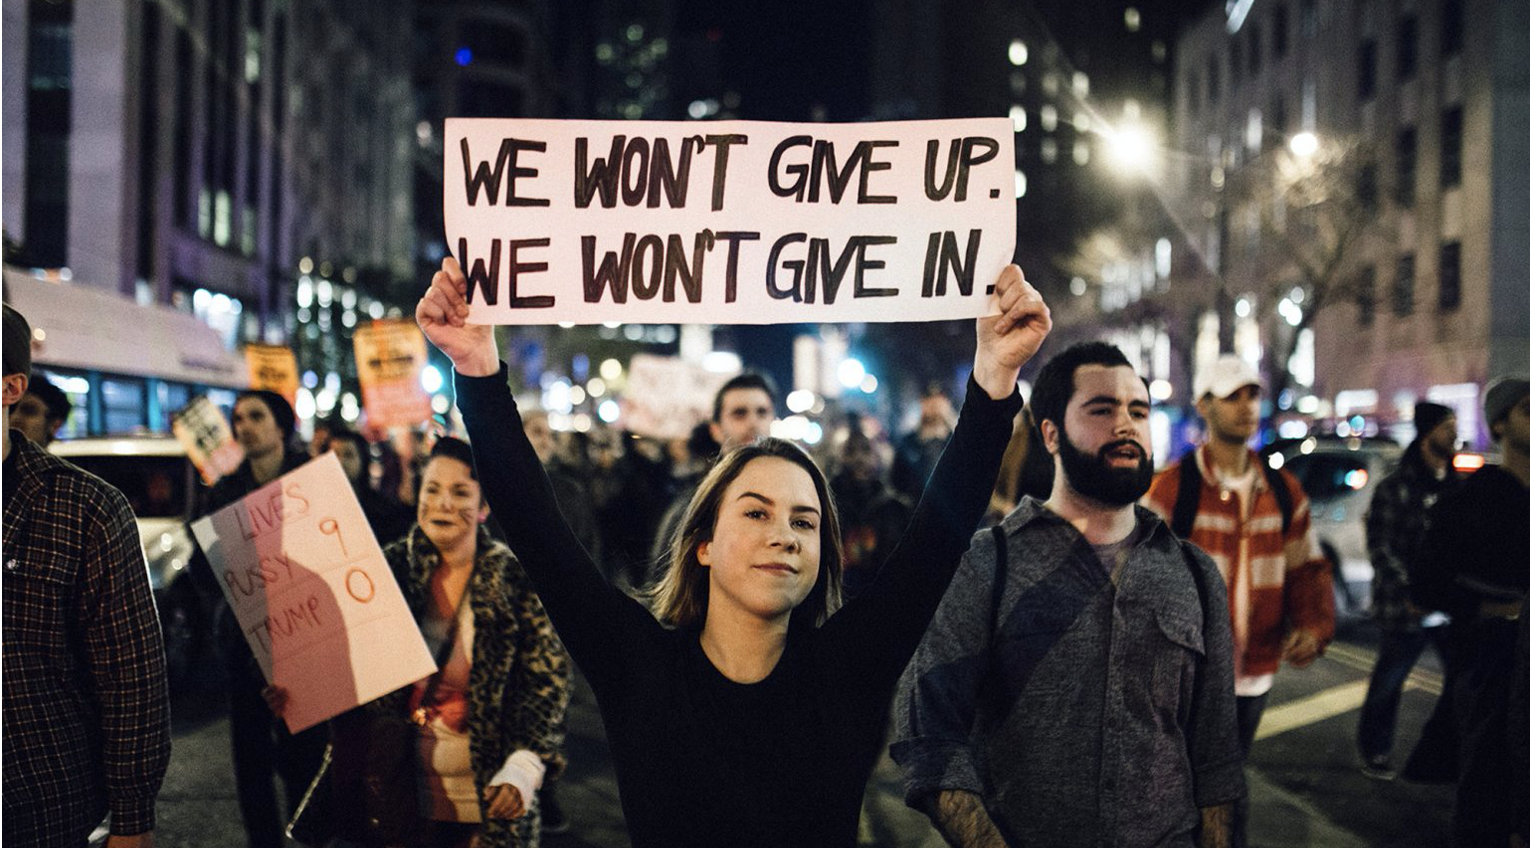 People at a protest, with a woman in the foreground holding a sign that reads, we won't give up, we won't give in